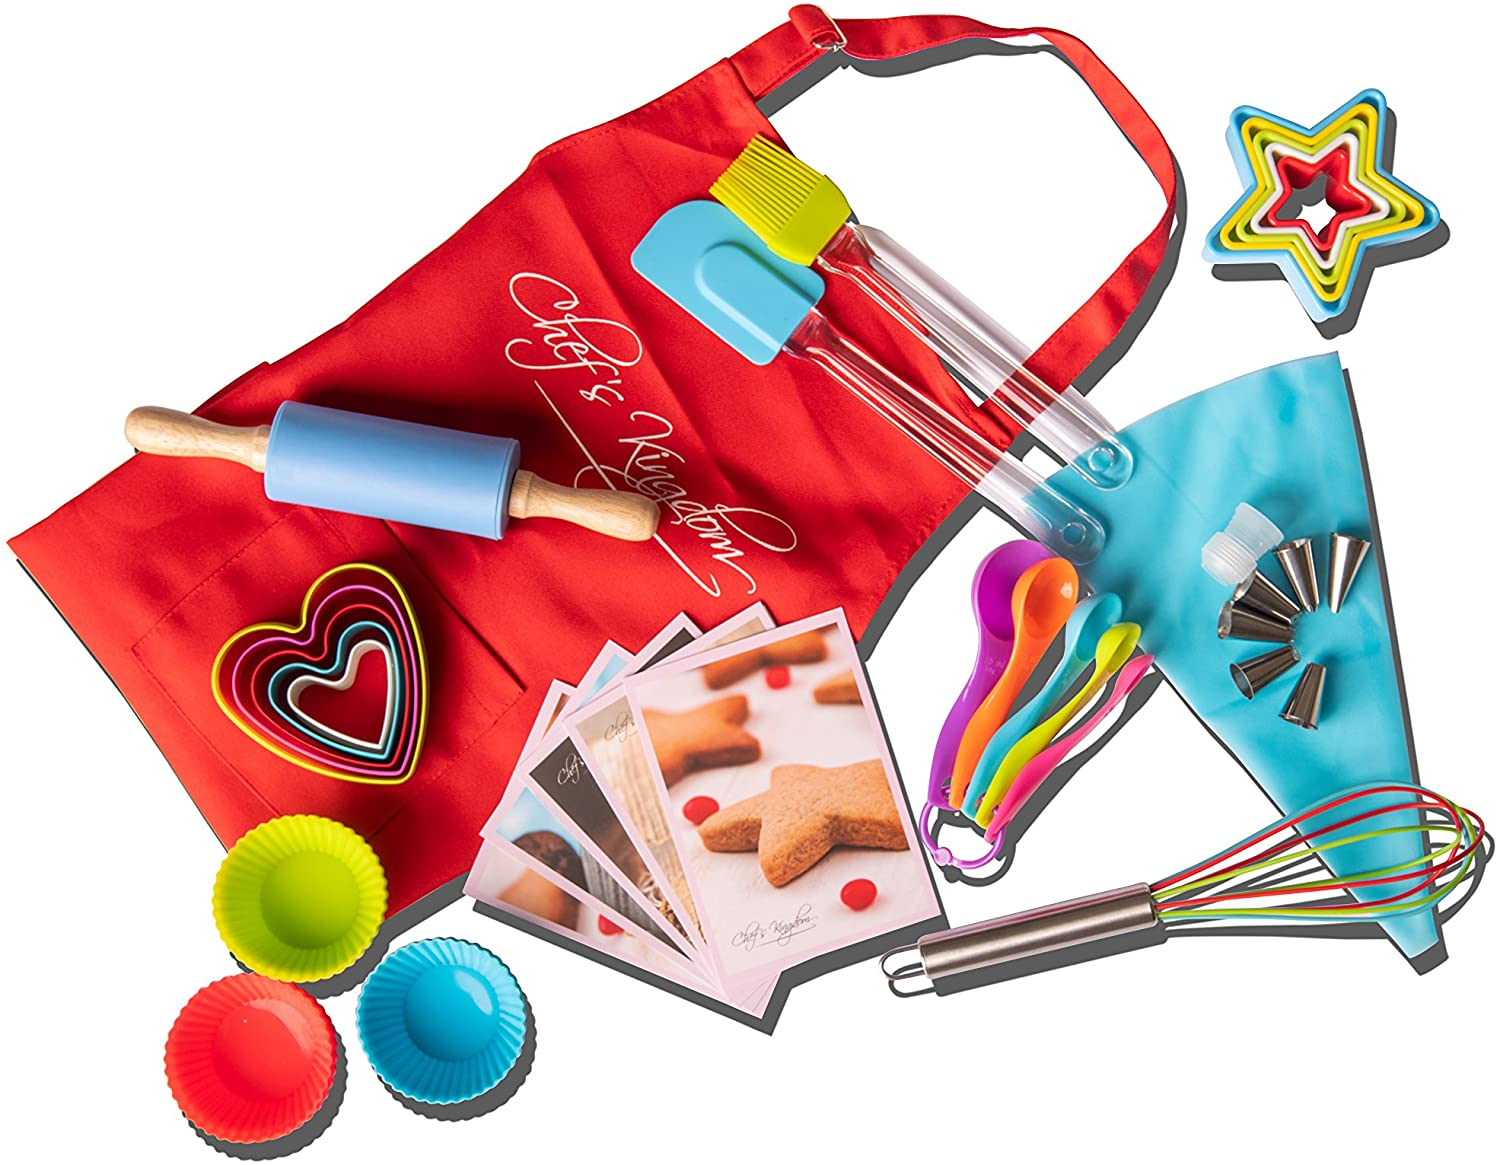 Children's baking set with red apron